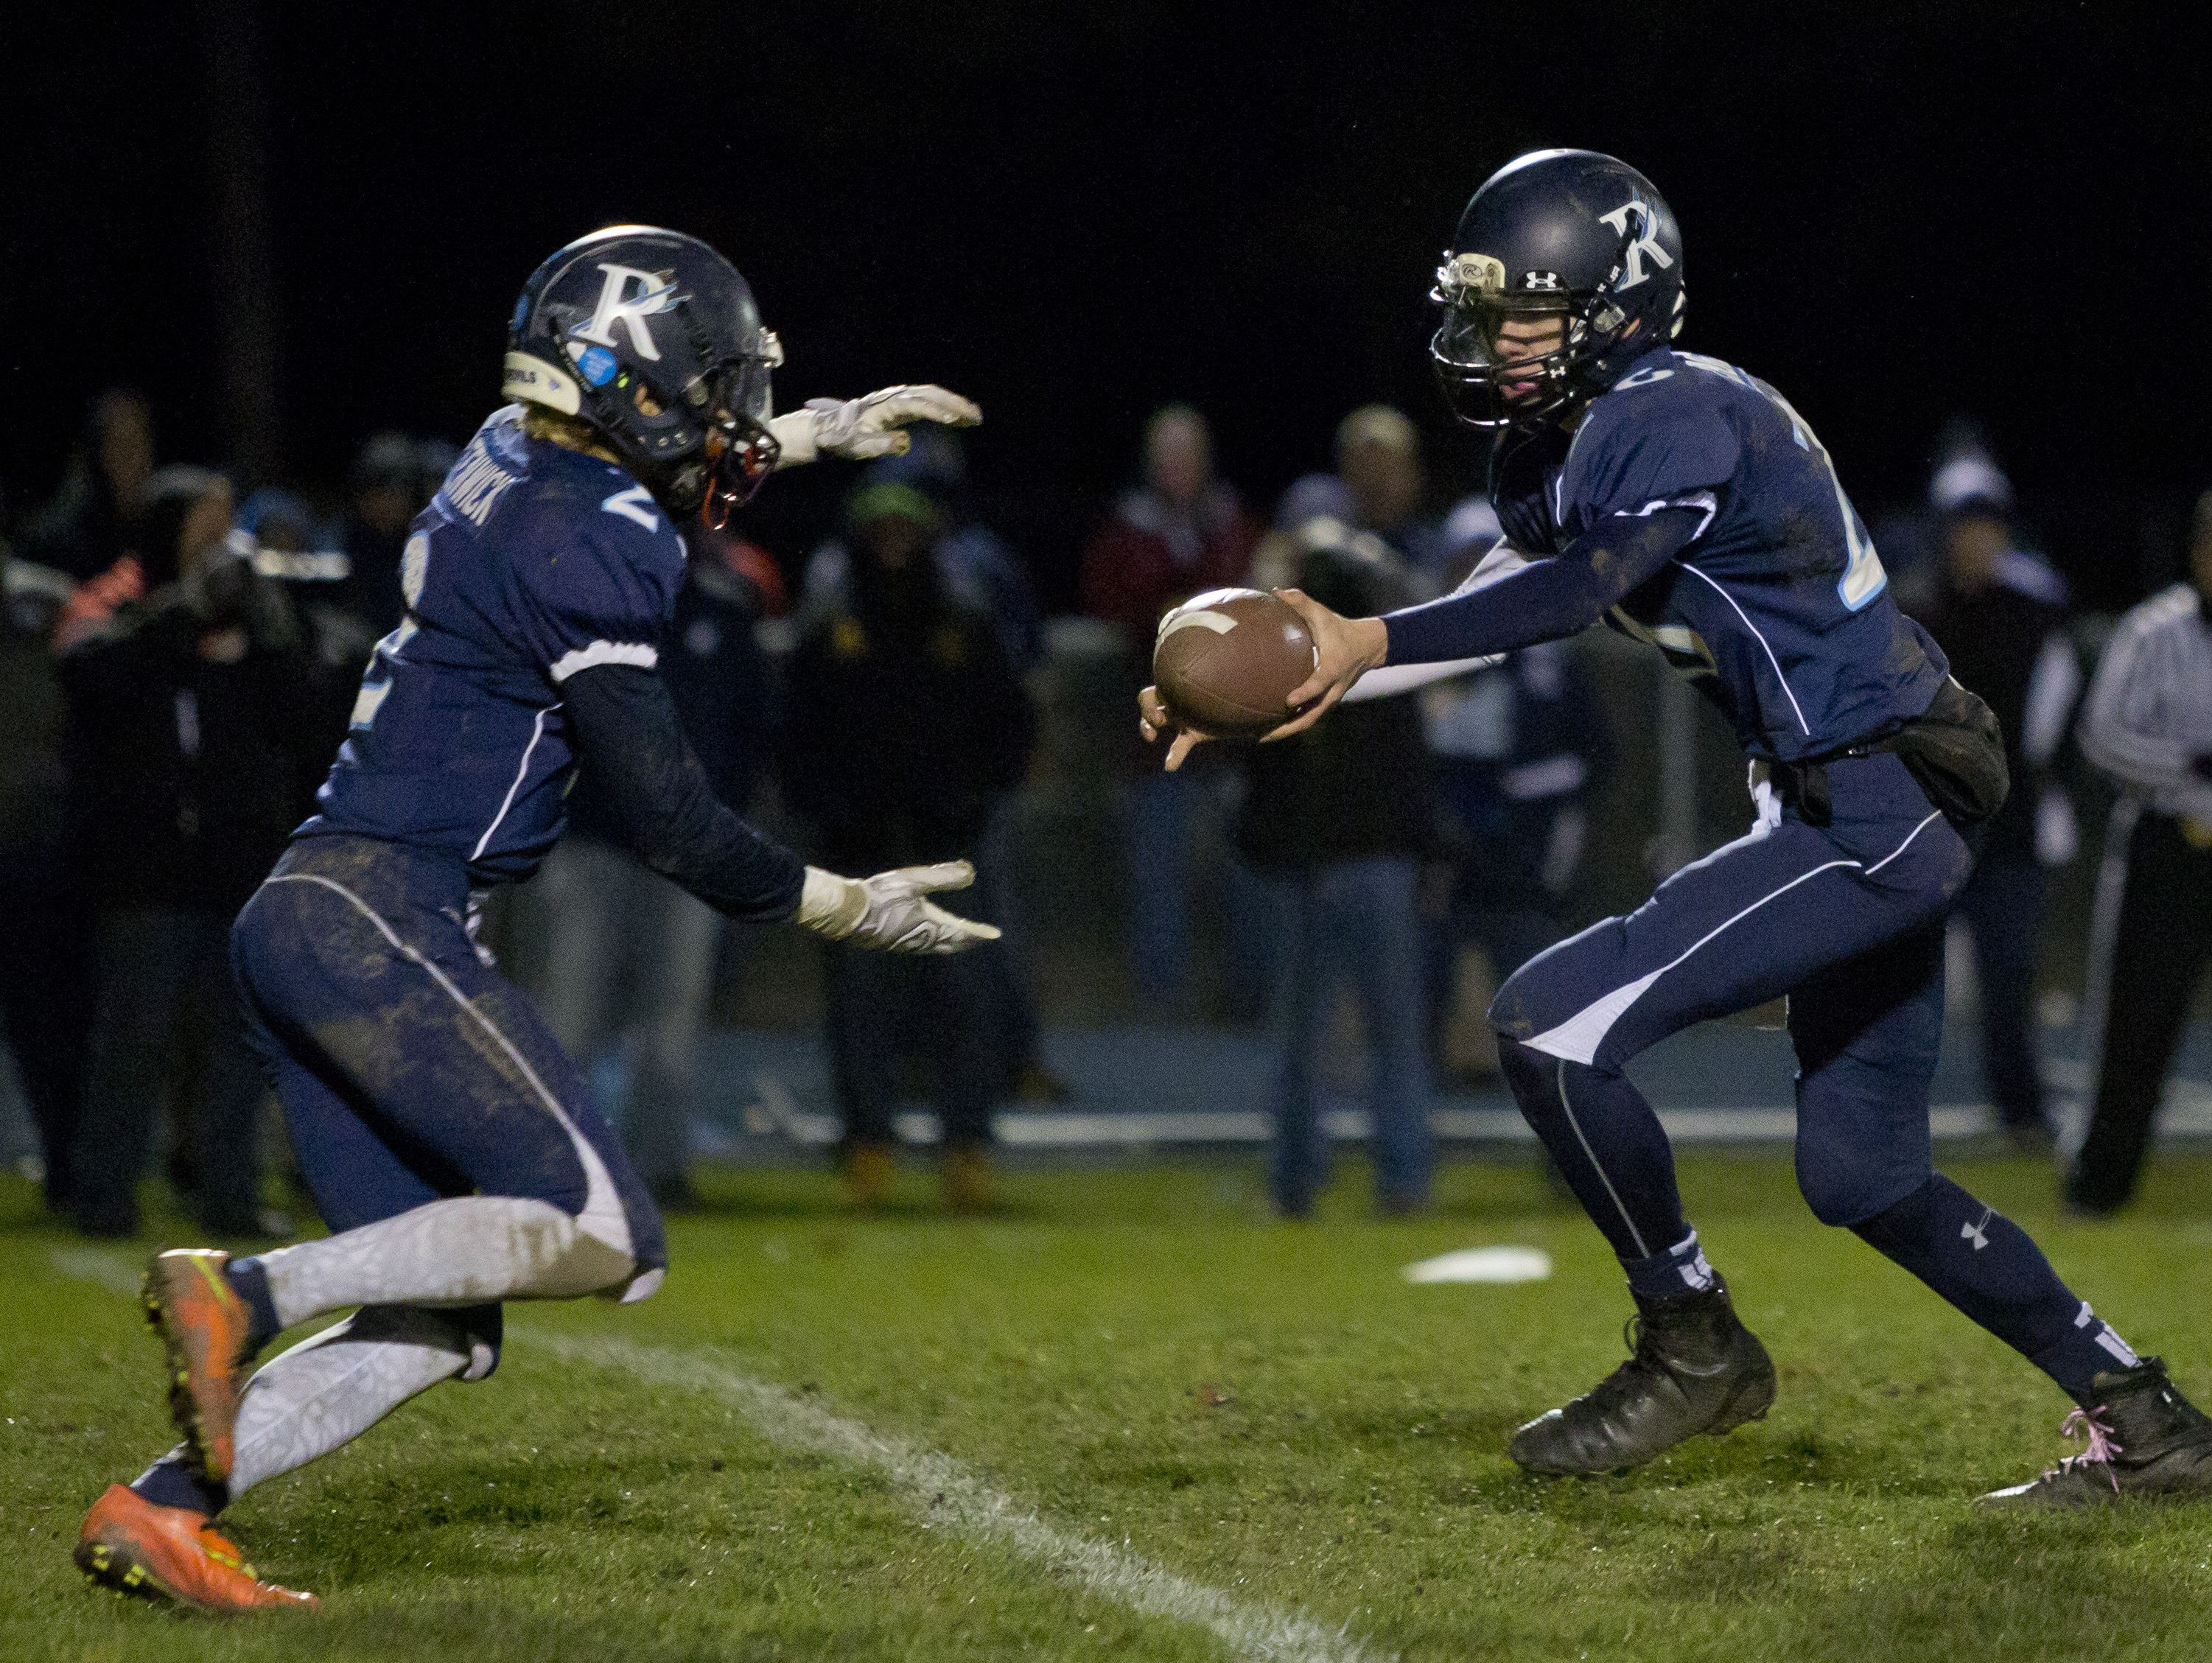 Richmond's Chase Churchill hands off the ball to Stefan Fenwick during a regional final football game Friday, November 13, 2015 at Richmond High School.